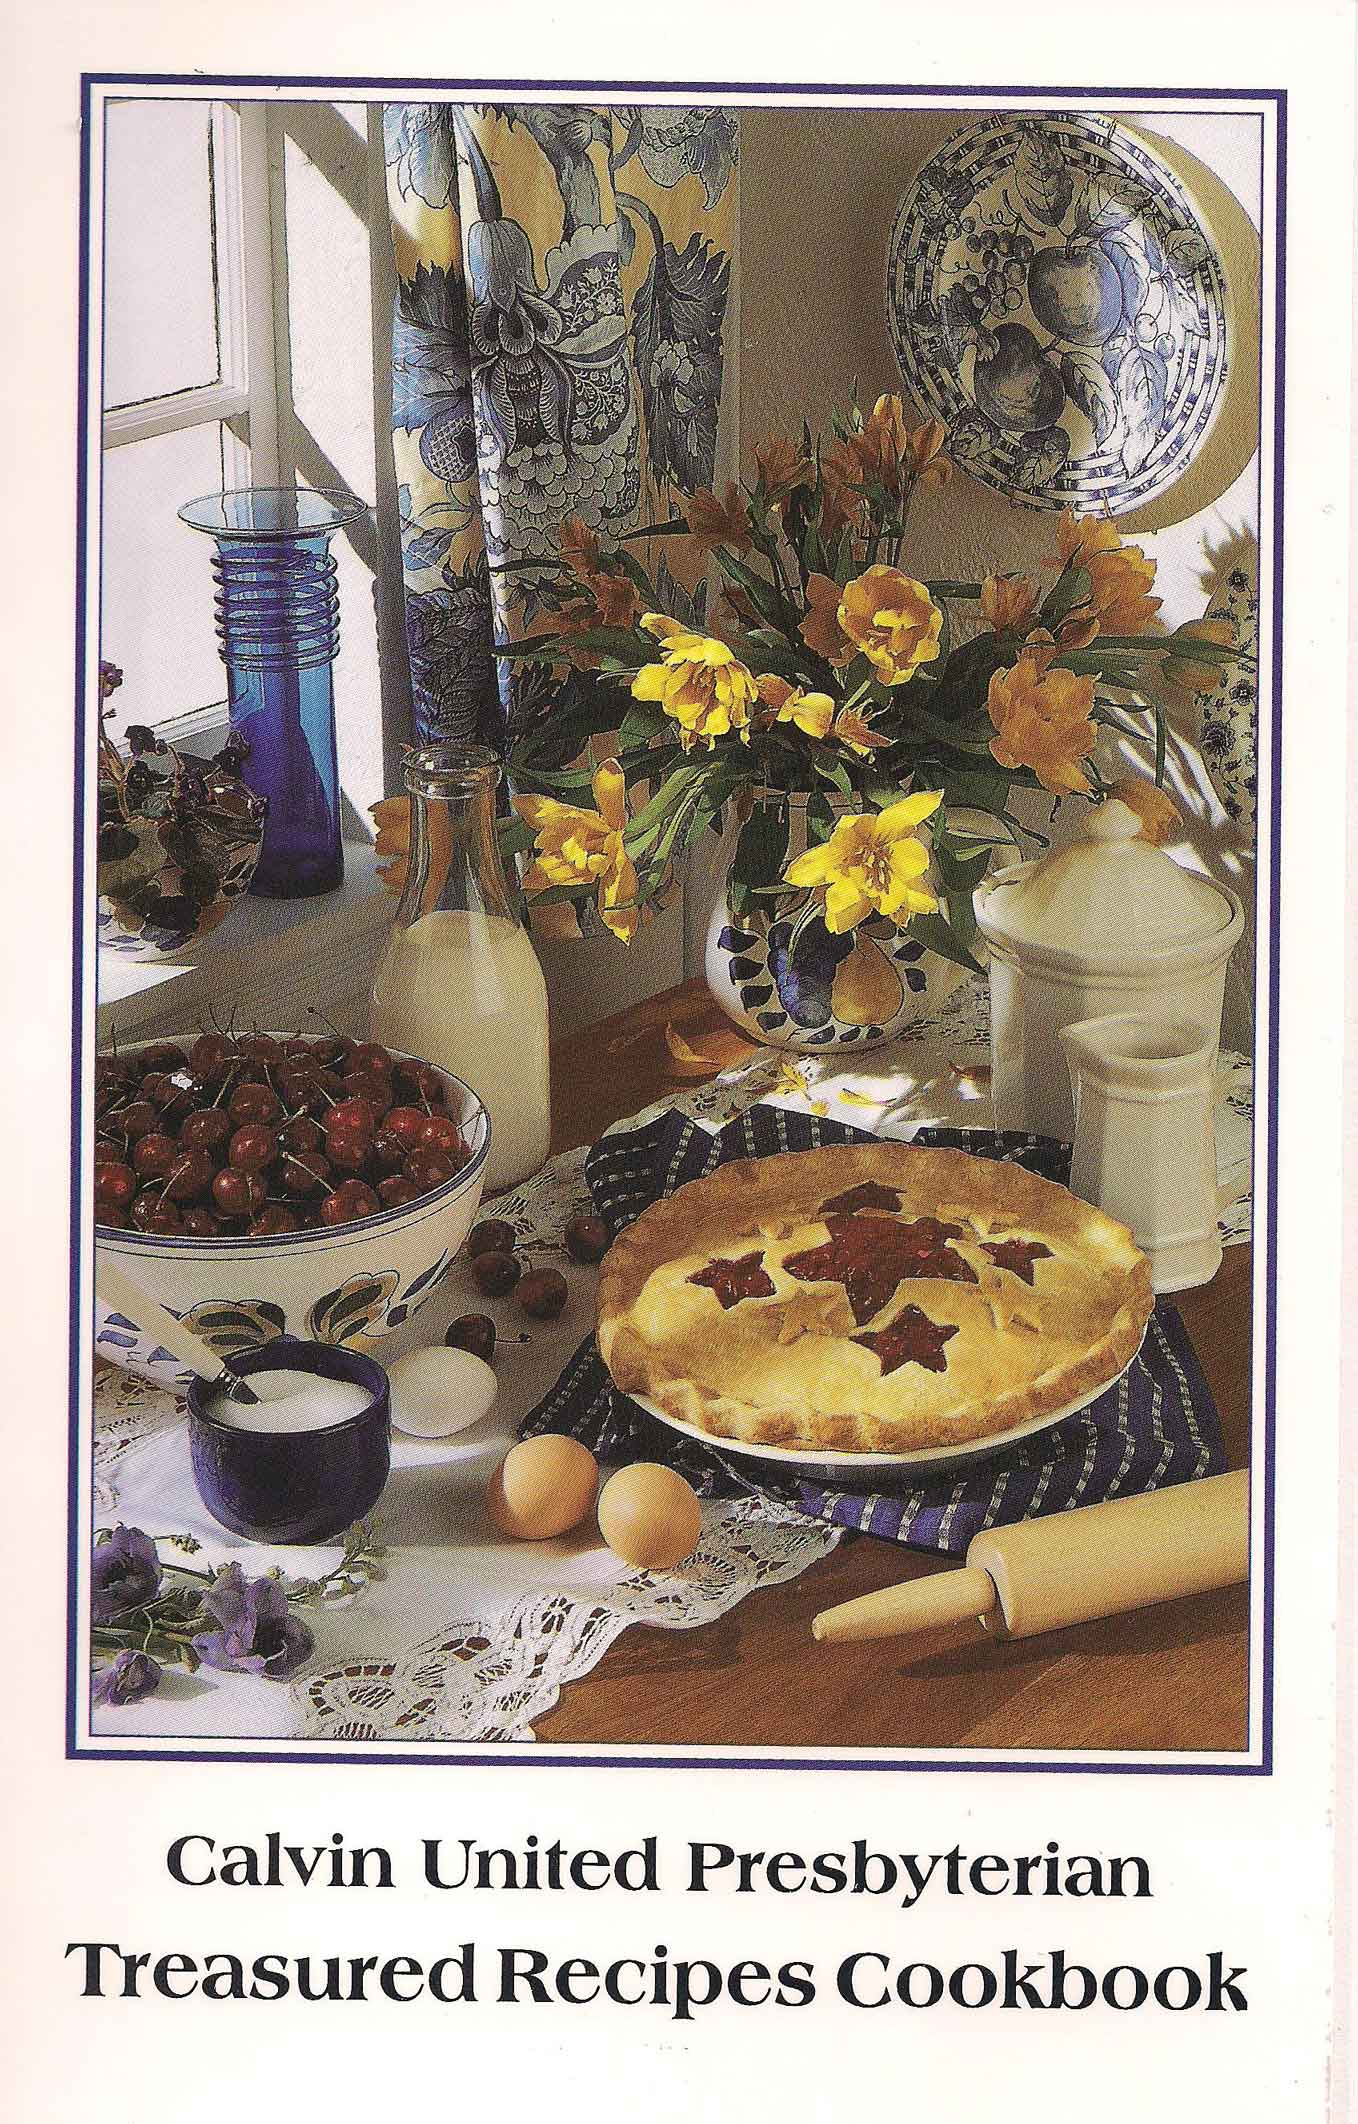 Calvin United Presbyterian Treasured Recipes Cookbook